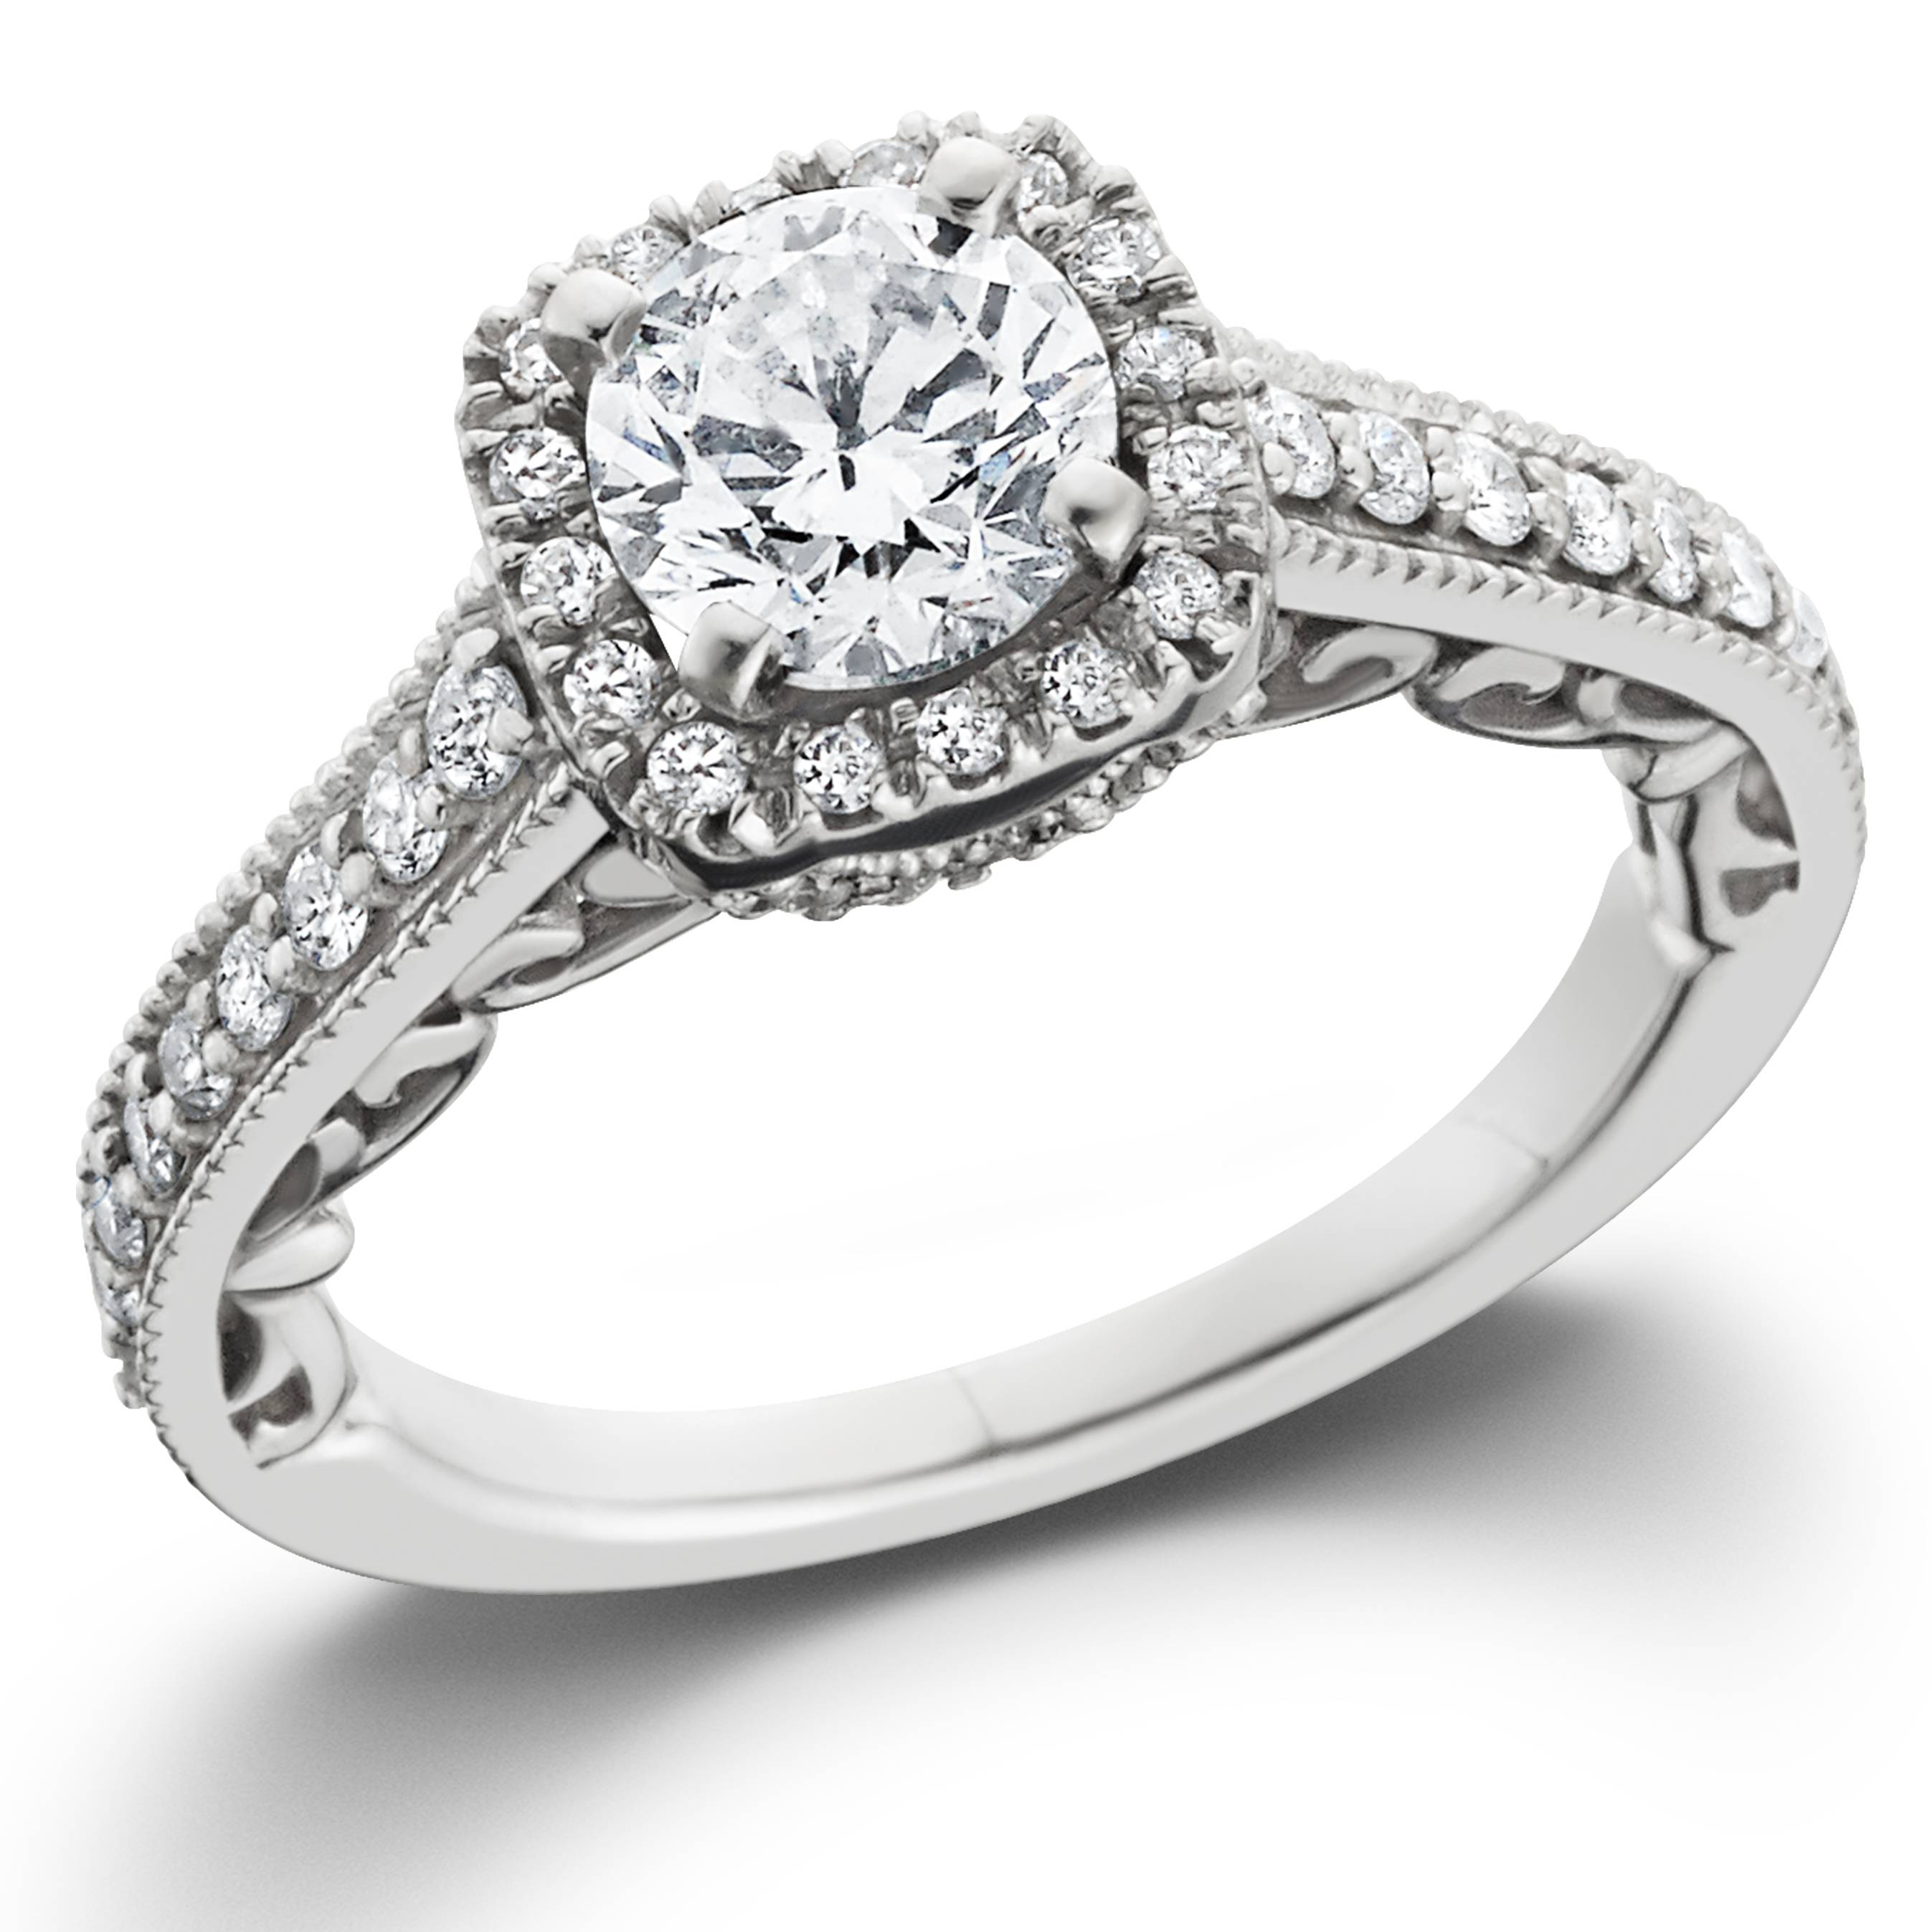 wedding rings diamond 7 8ct cushion vintage halo engagement ring 14k 1022